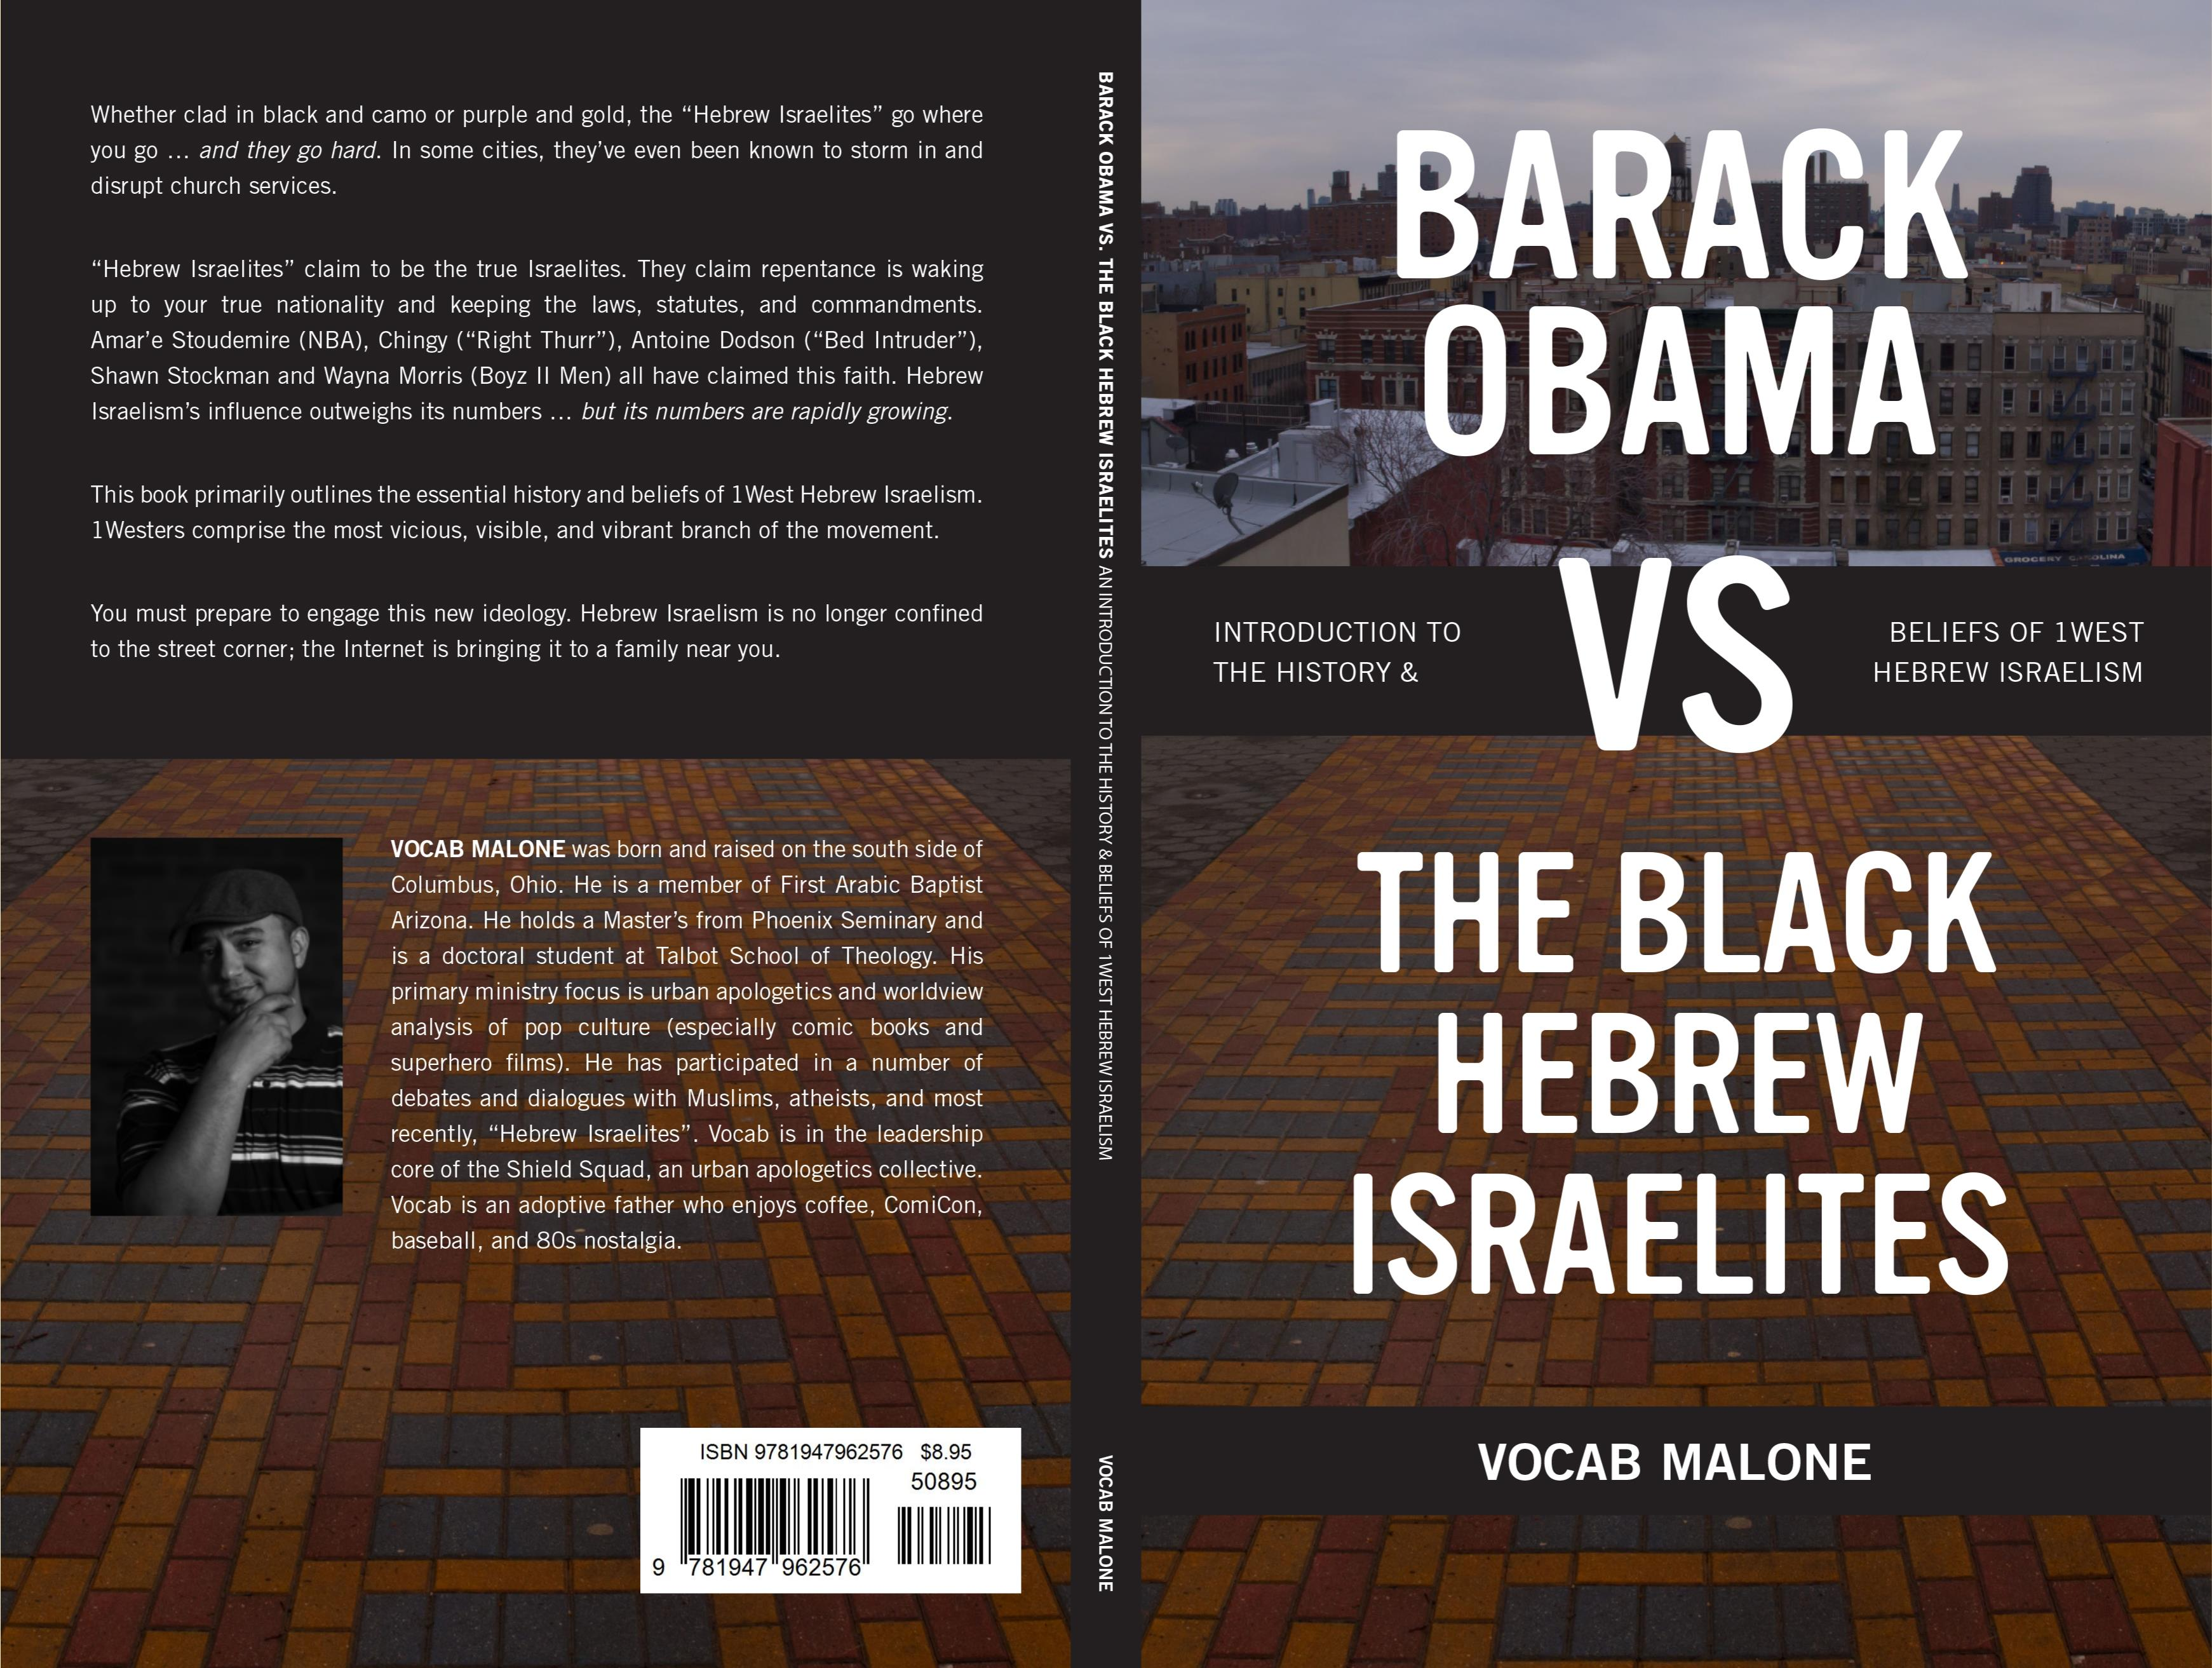 BARACK OBAMA vs THE BLACK HEBREW ISRAELITES cover image